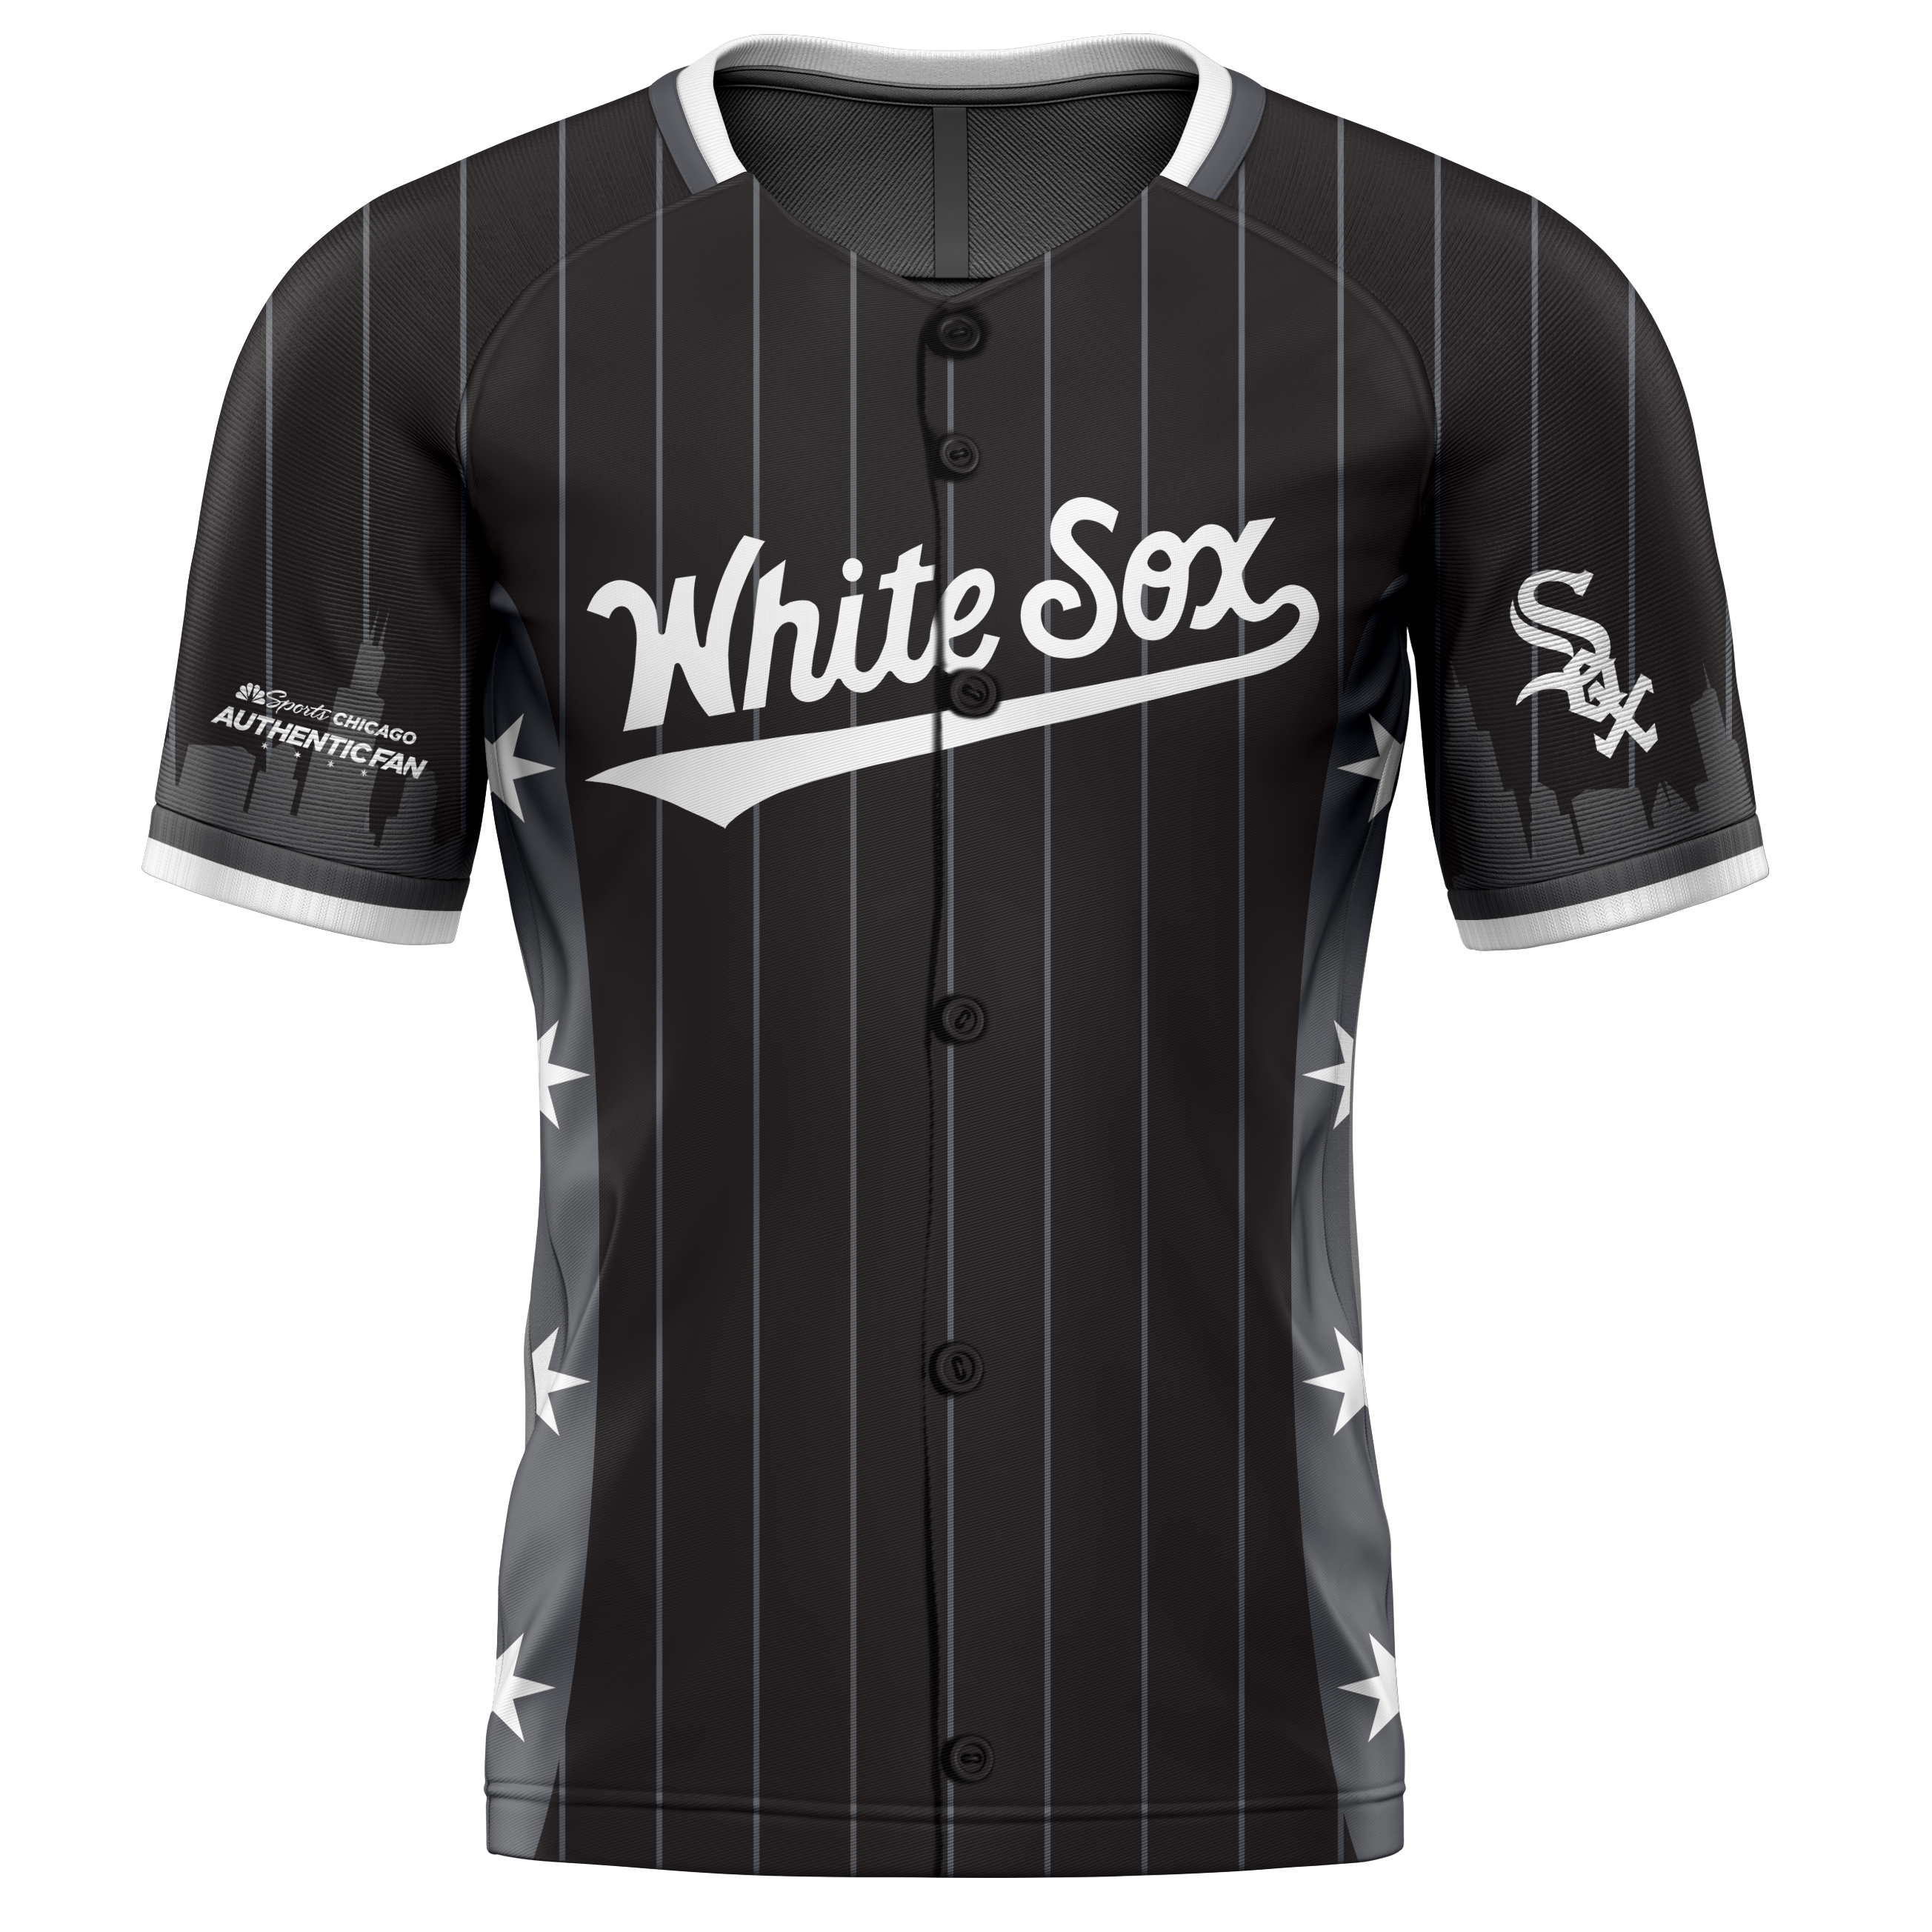 9d9b737f7de ... White Sox Jersey. Presented By NBC Sports Chicago